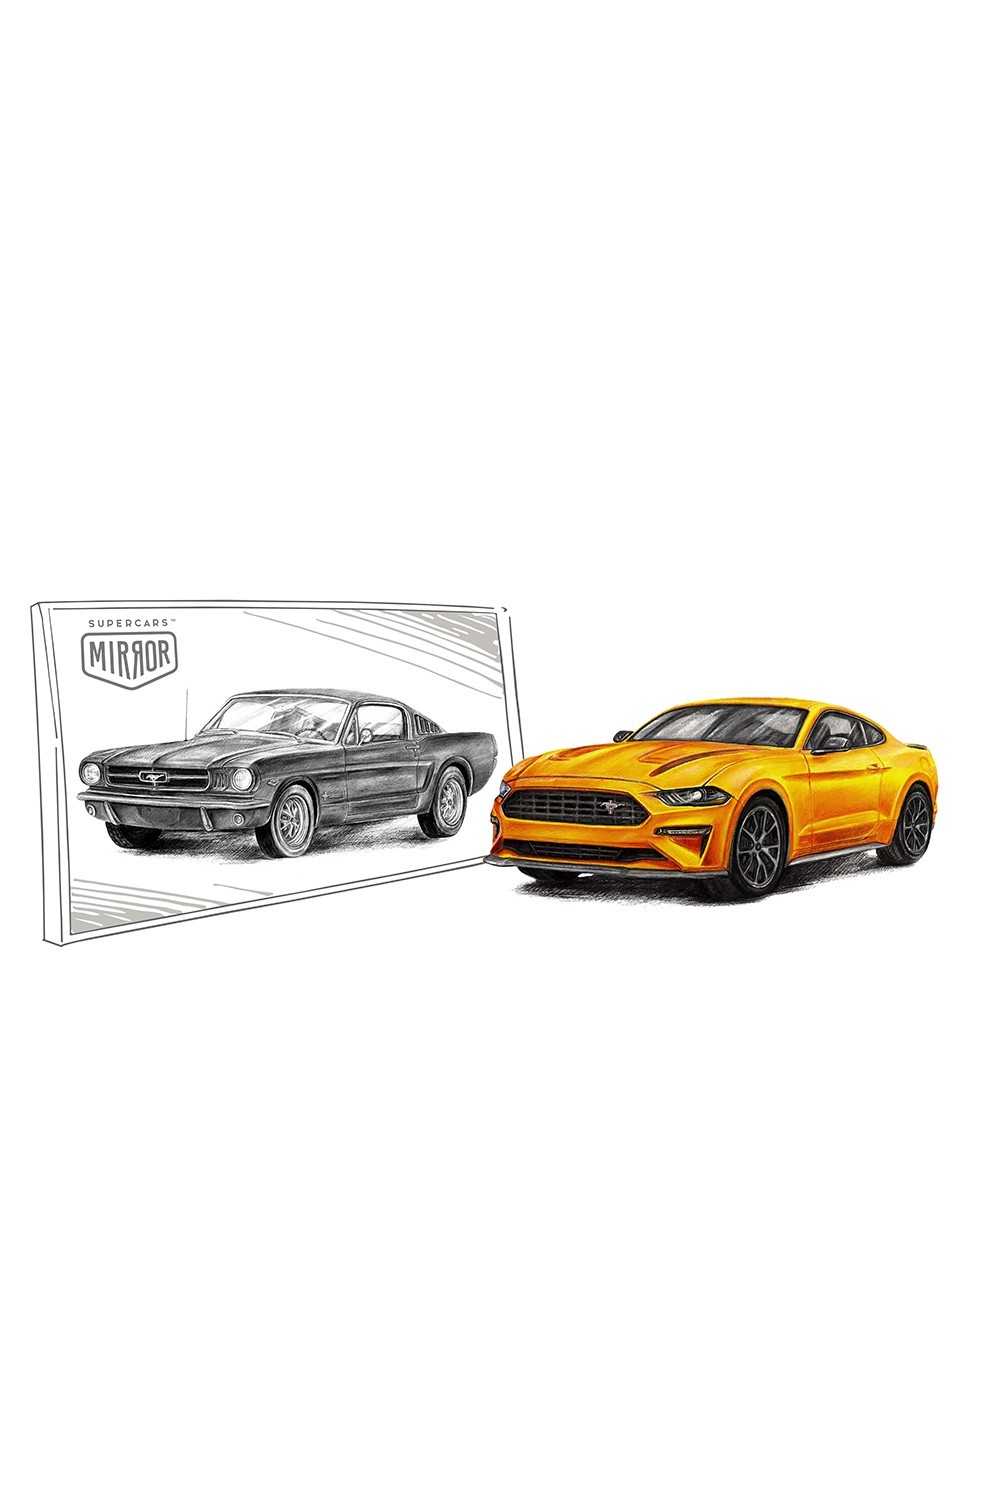 Ford Mustang VI – Ford Mustang I fastback